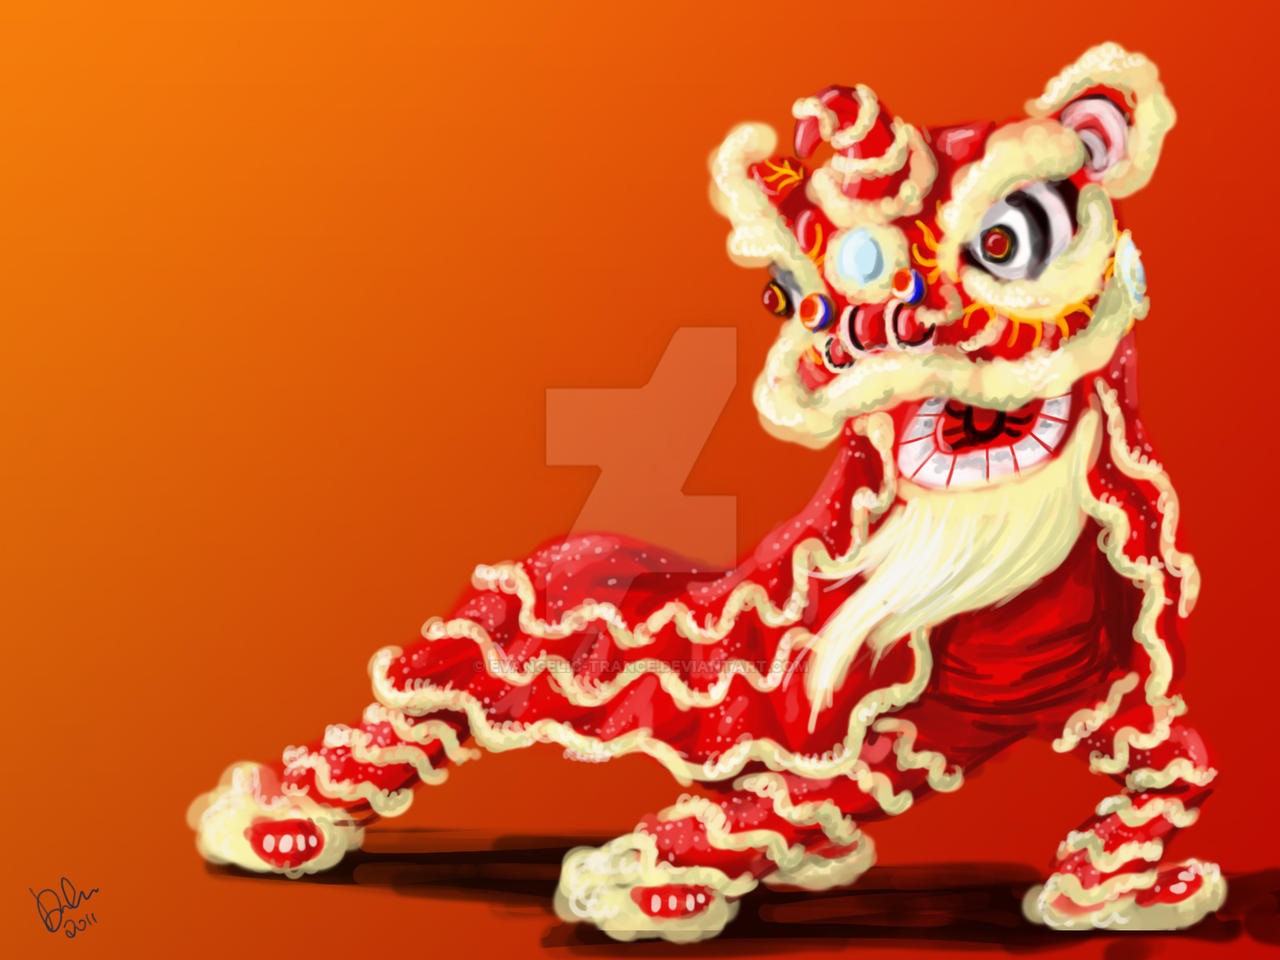 Pubg By Sodano On Deviantart: Chinese Lion Dance Painting